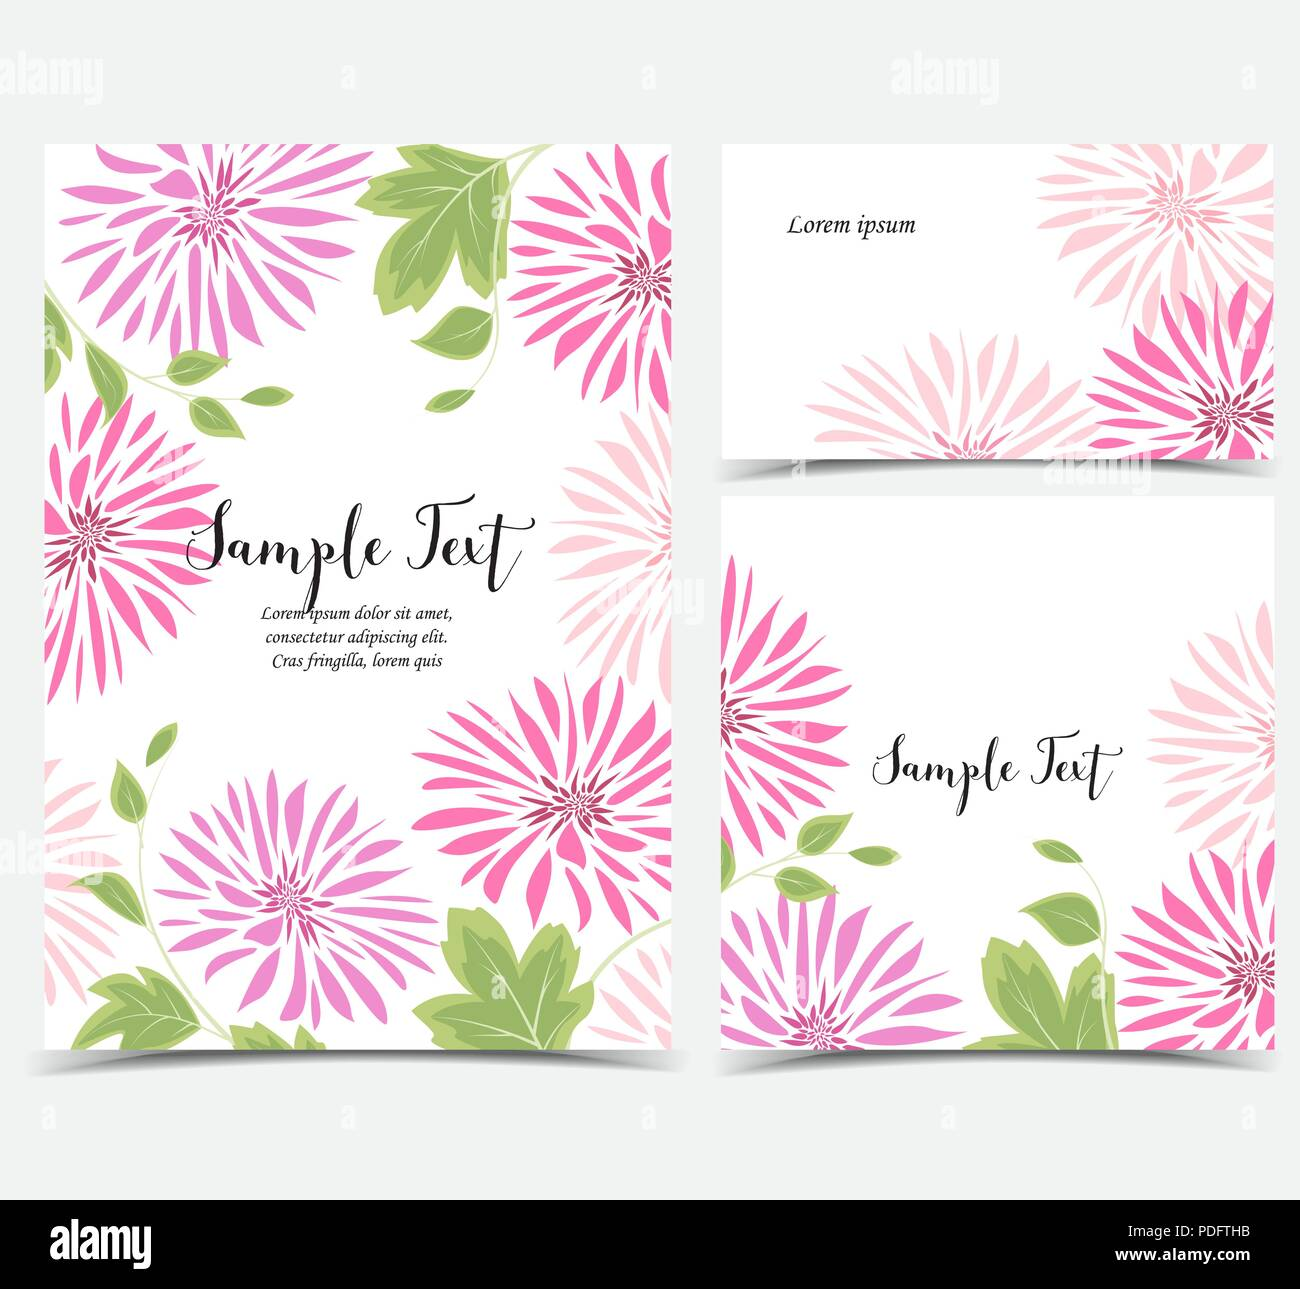 Vector Illustration Of Dahlia Flower Background With Pink Flowers